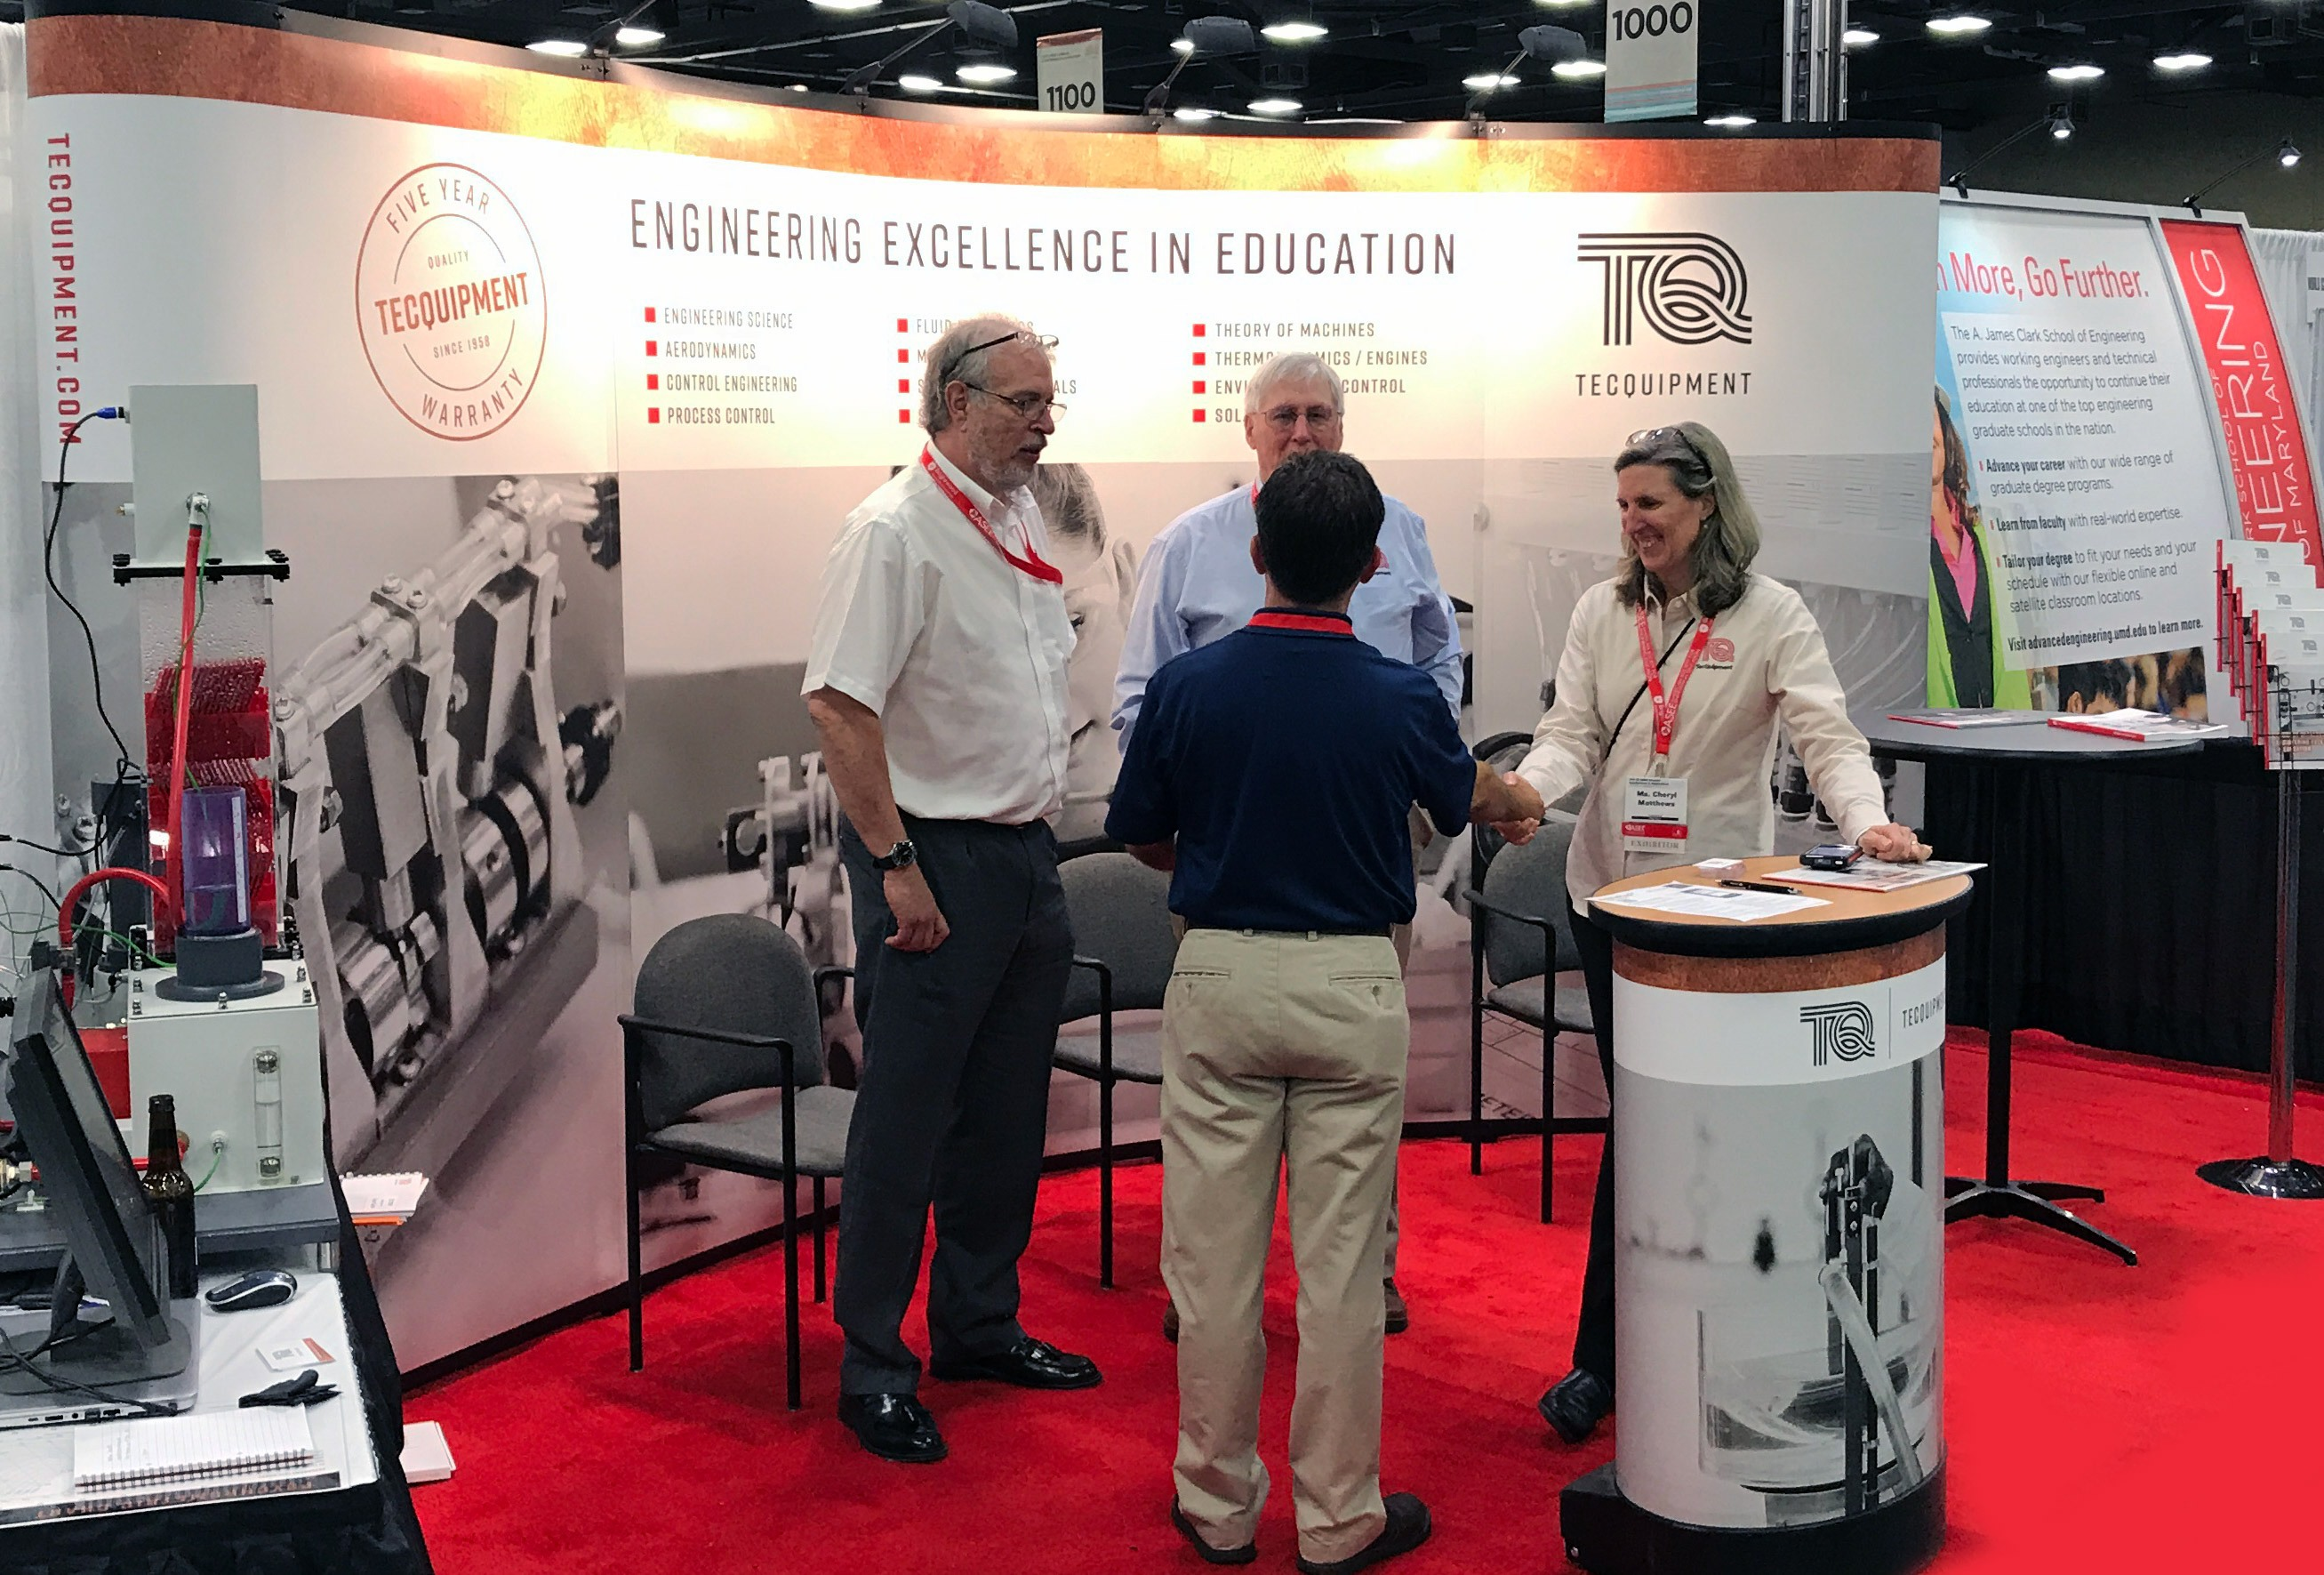 A gathering at TecQuipment's ASEE booth